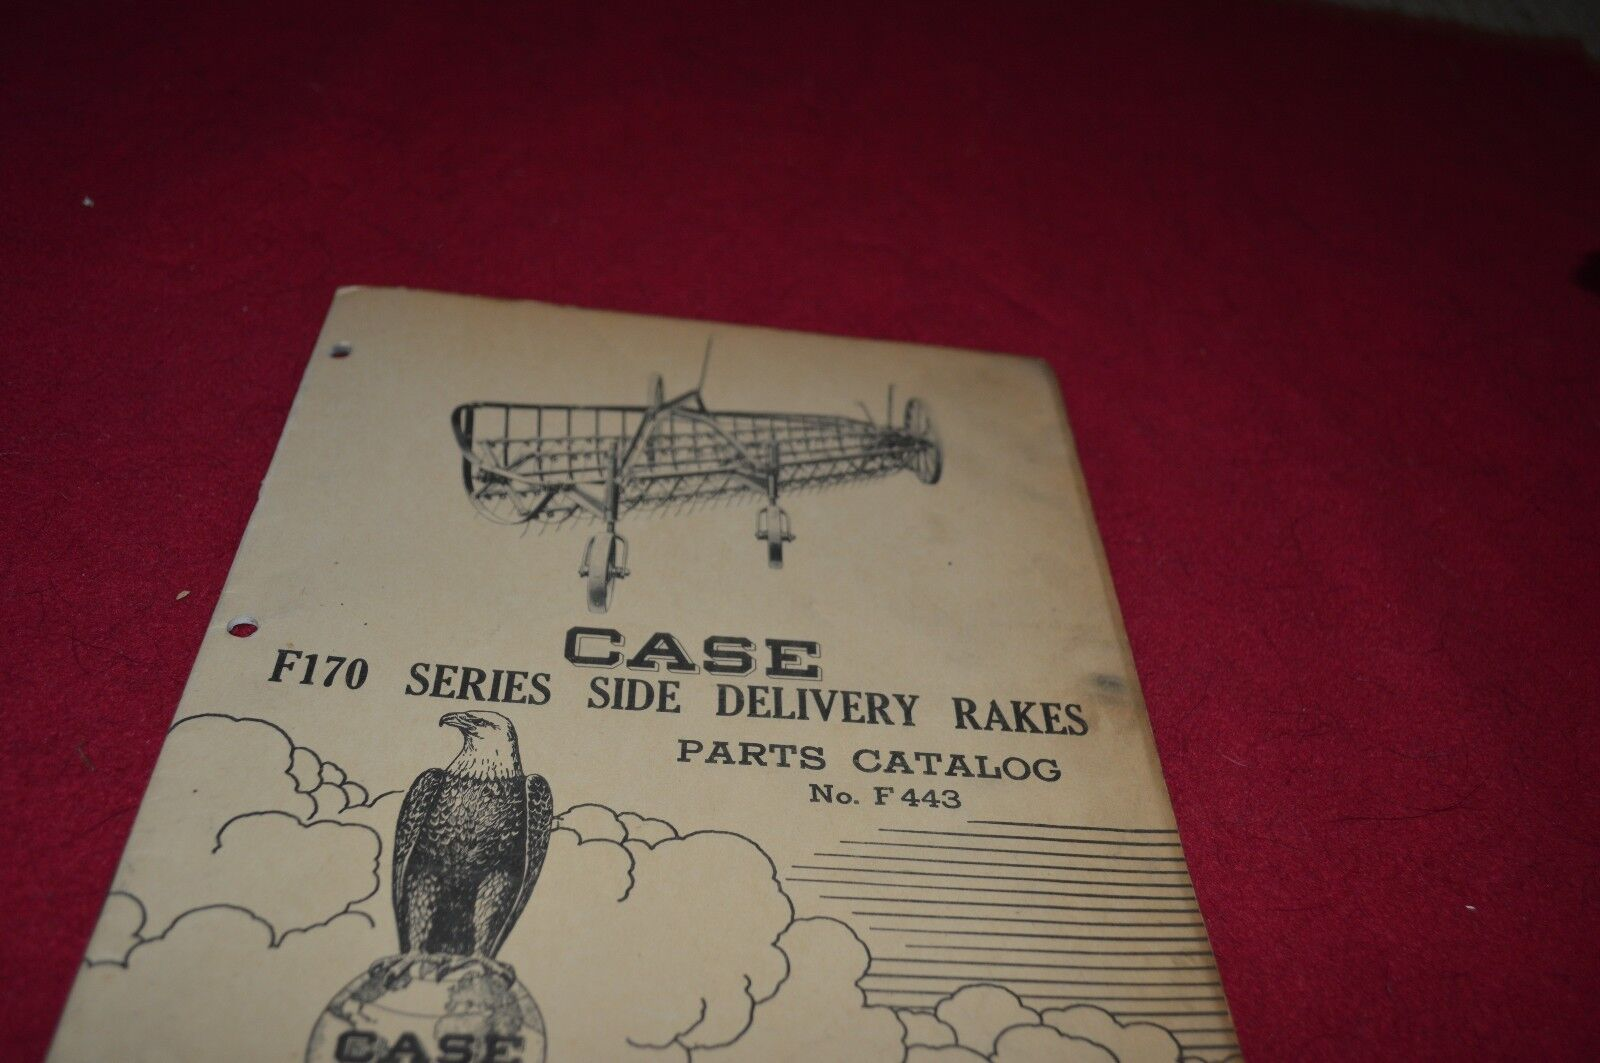 Case Tractor F170 Rake Dealers Parts Book Manual Yabe8 Ver3 Wundr Figure 614sample Wiring Diagram